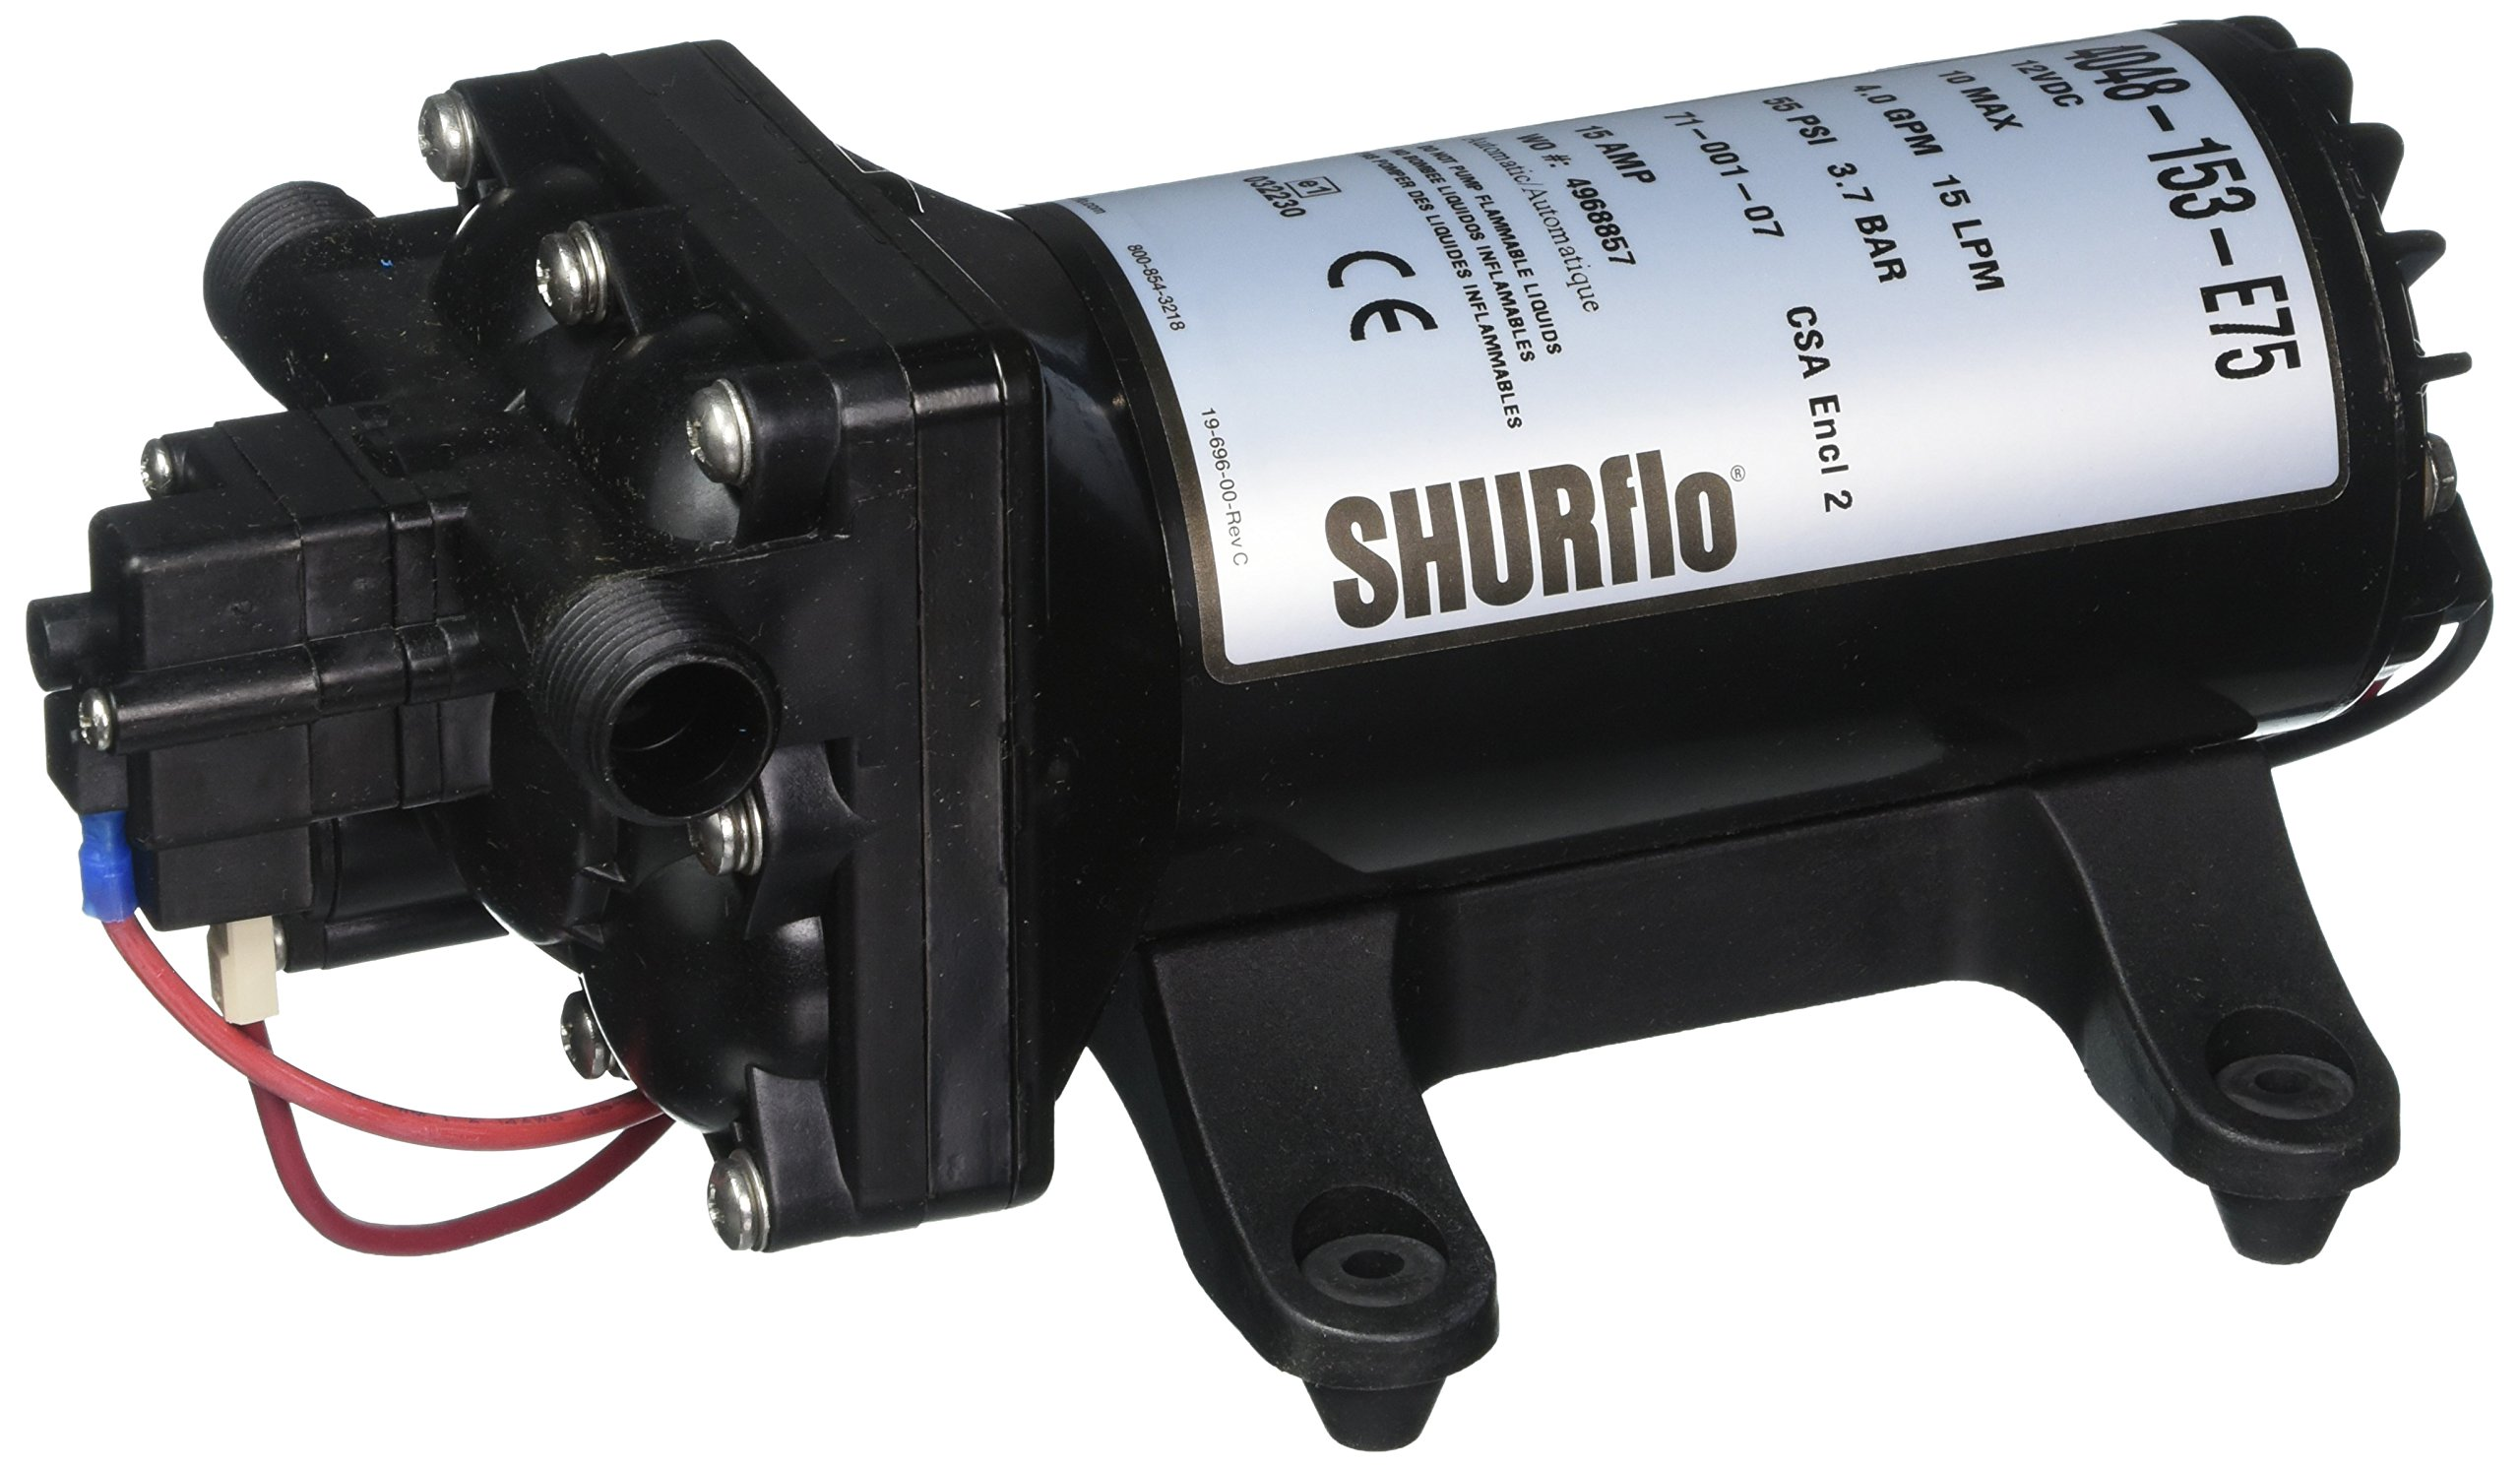 Shurflo 4048153E75 Electric Water Pump by SHURFLO